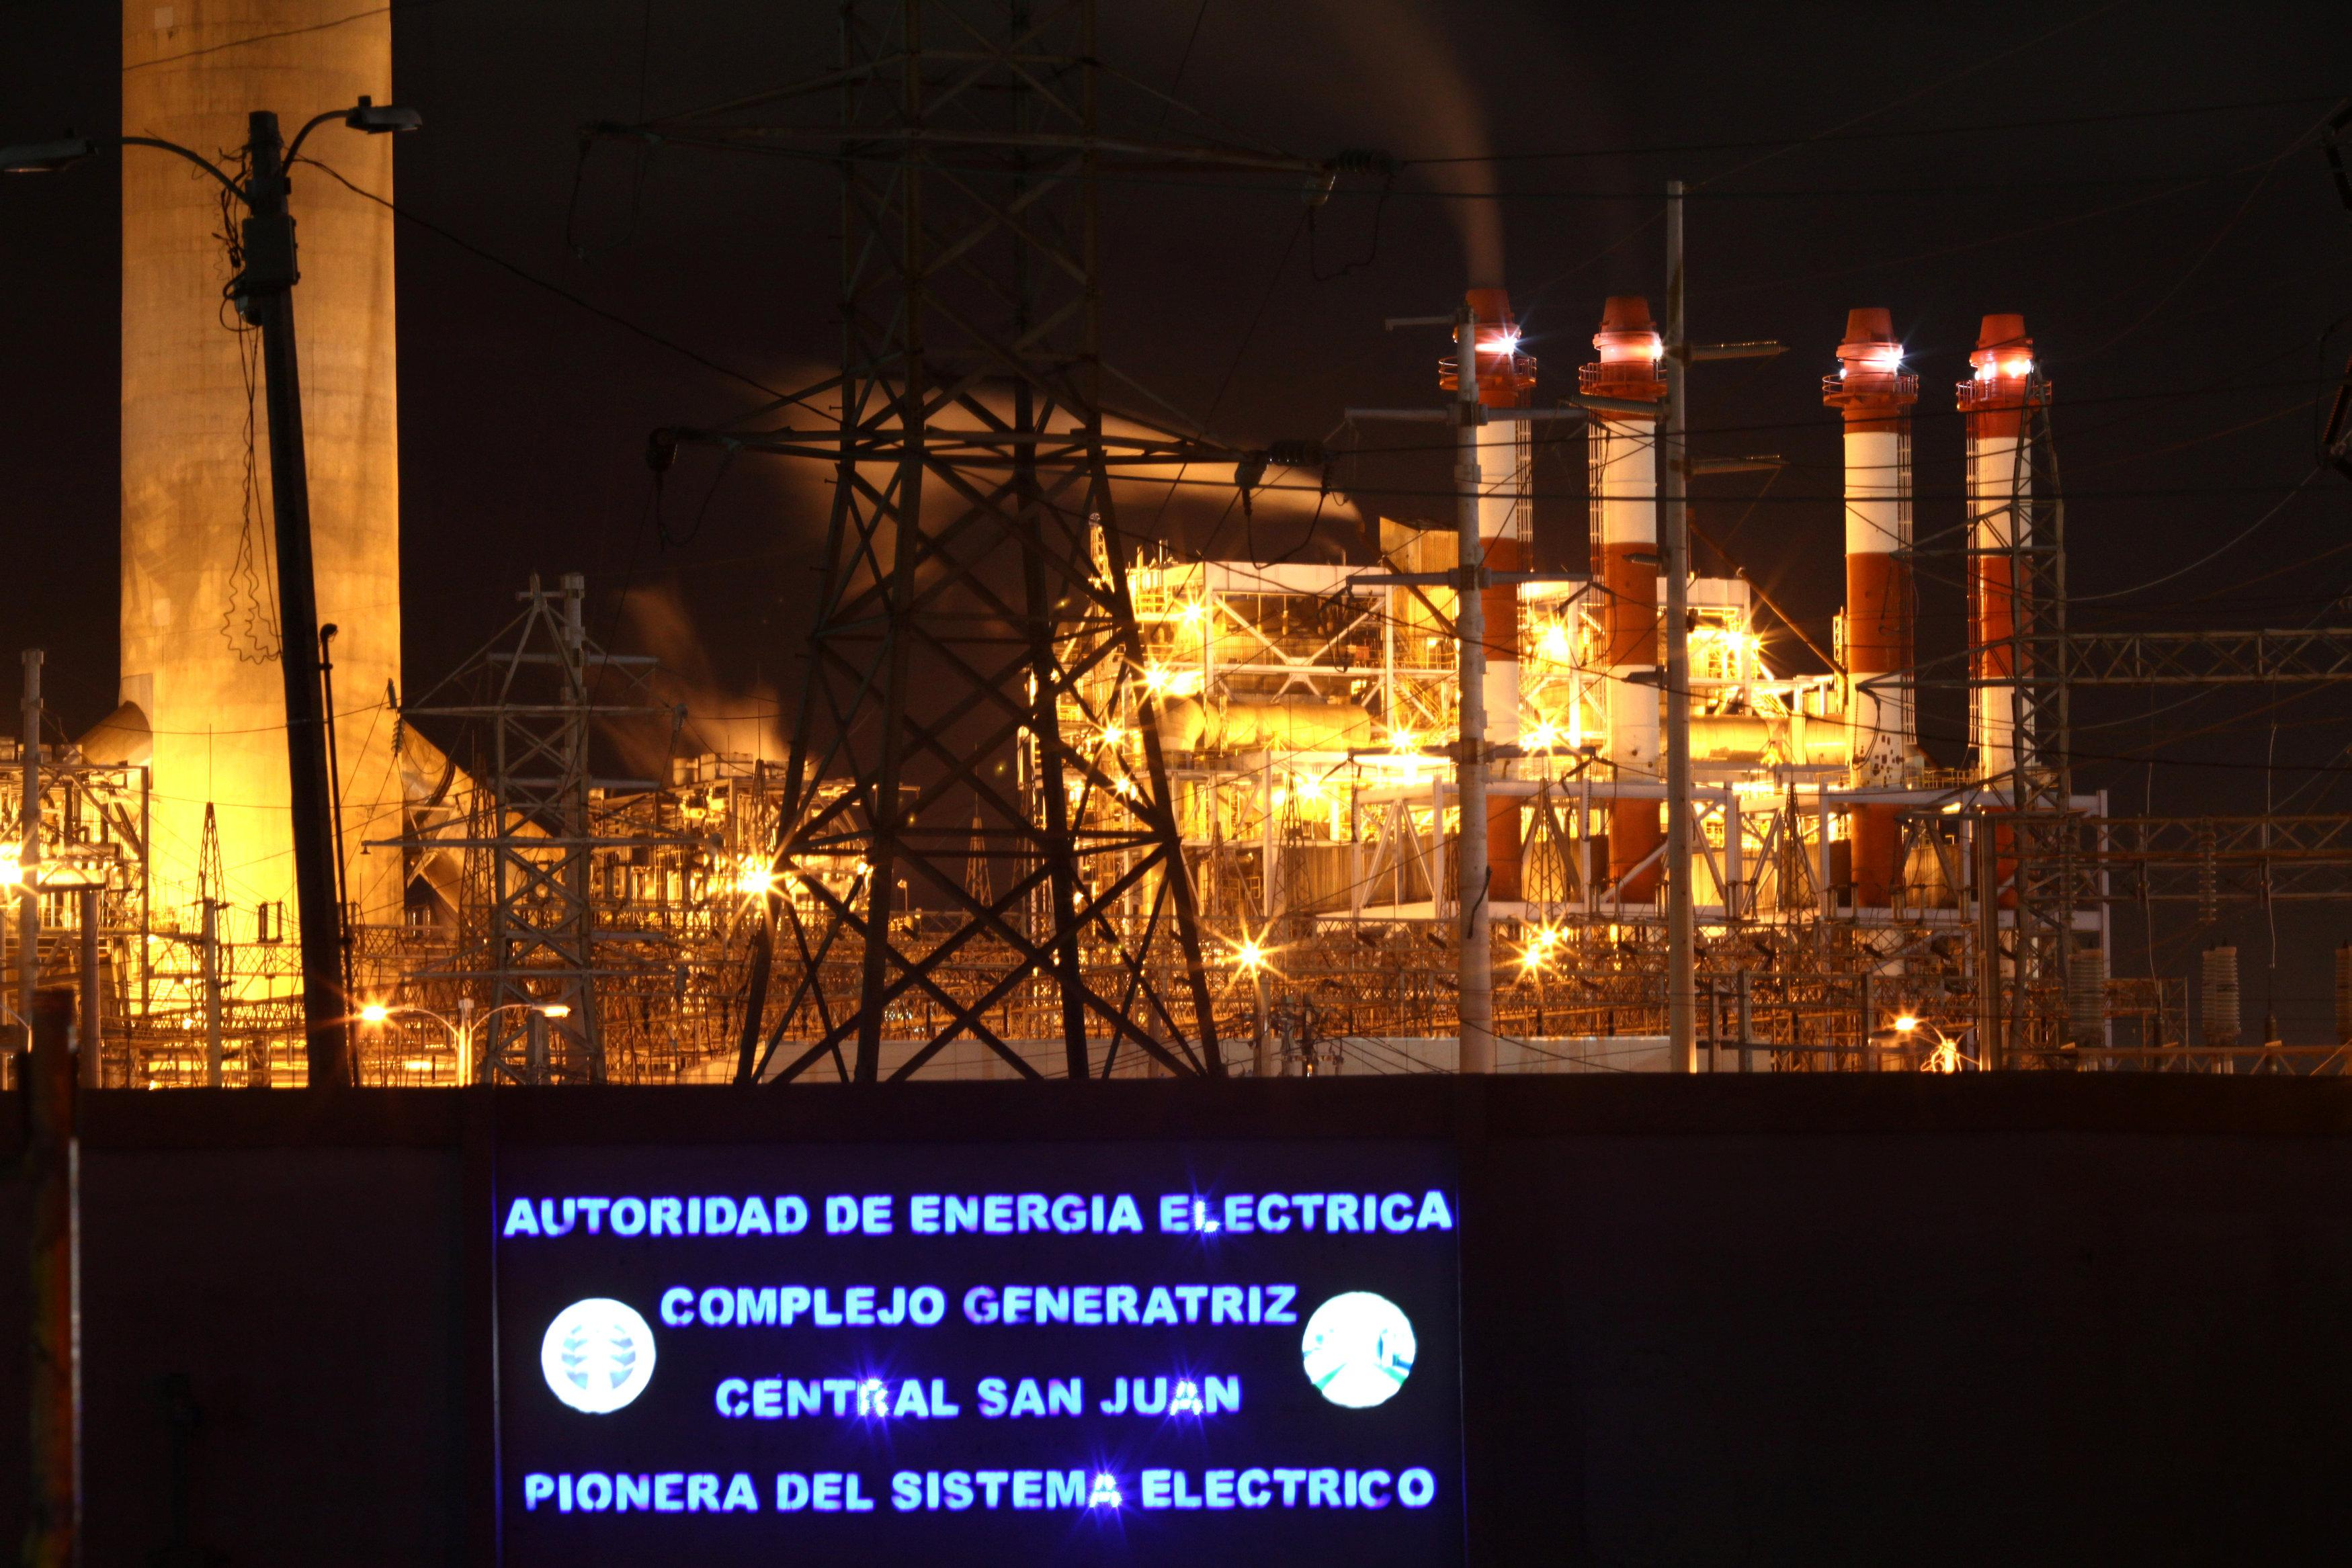 Central Palo Seco power station of the Puerto Rico Electric Power Authority (PREPA) is seen in San Juan, Puerto Rico January 22, 2018. The luminous sign reads